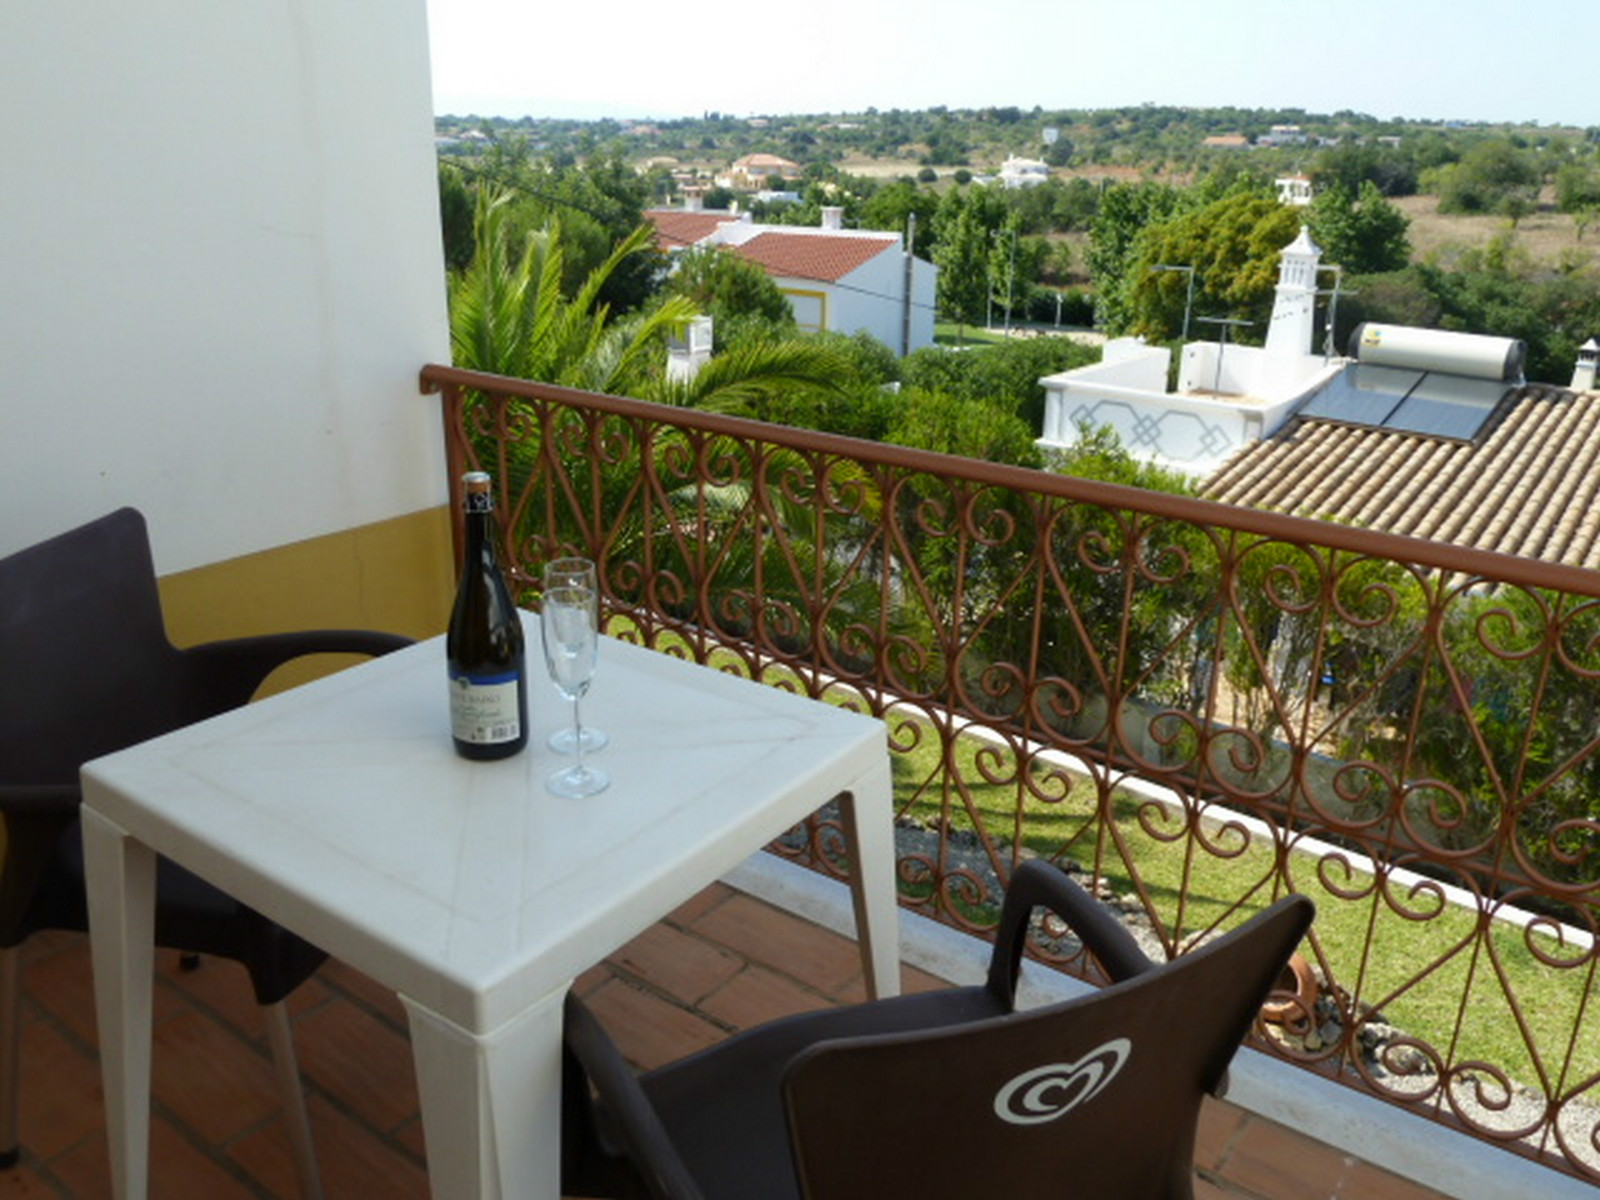 Relaxing & cool, rear garden terrace enjoys great views of villas & countryside.